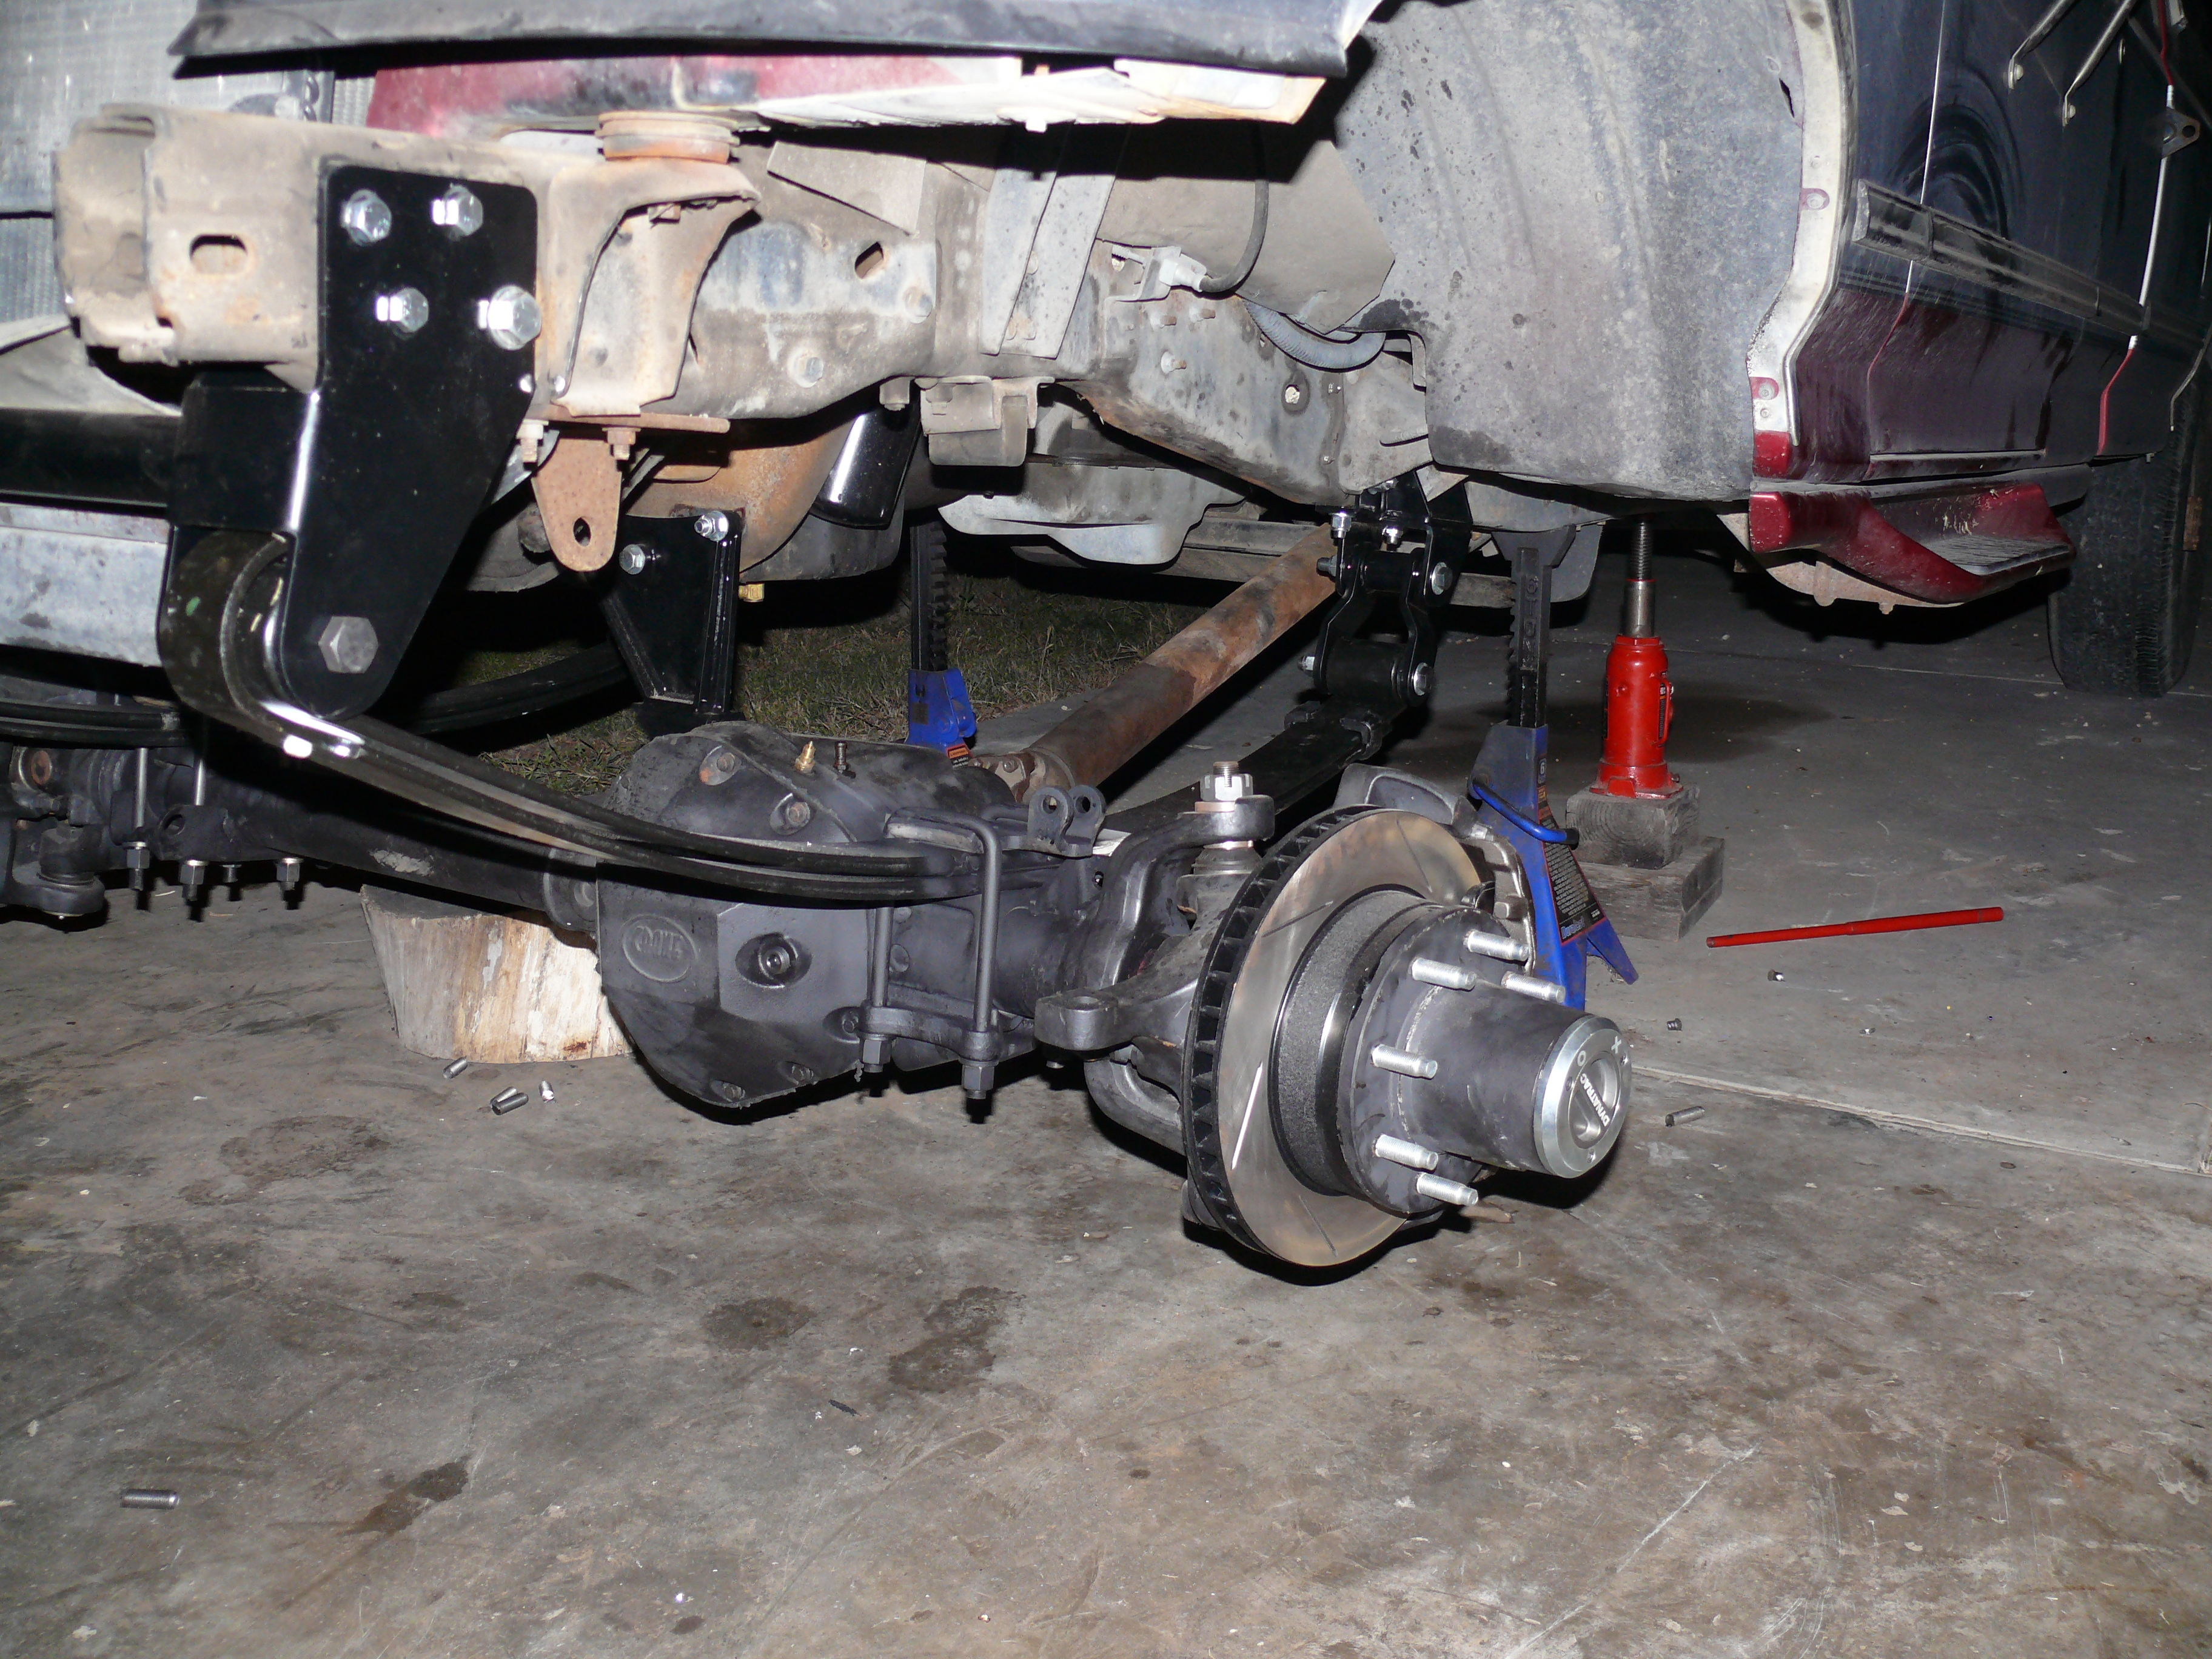 Jeep Yj Lift Springs home brew junkyard shackle reverse for 97 f350? - Ford Powerstroke ...